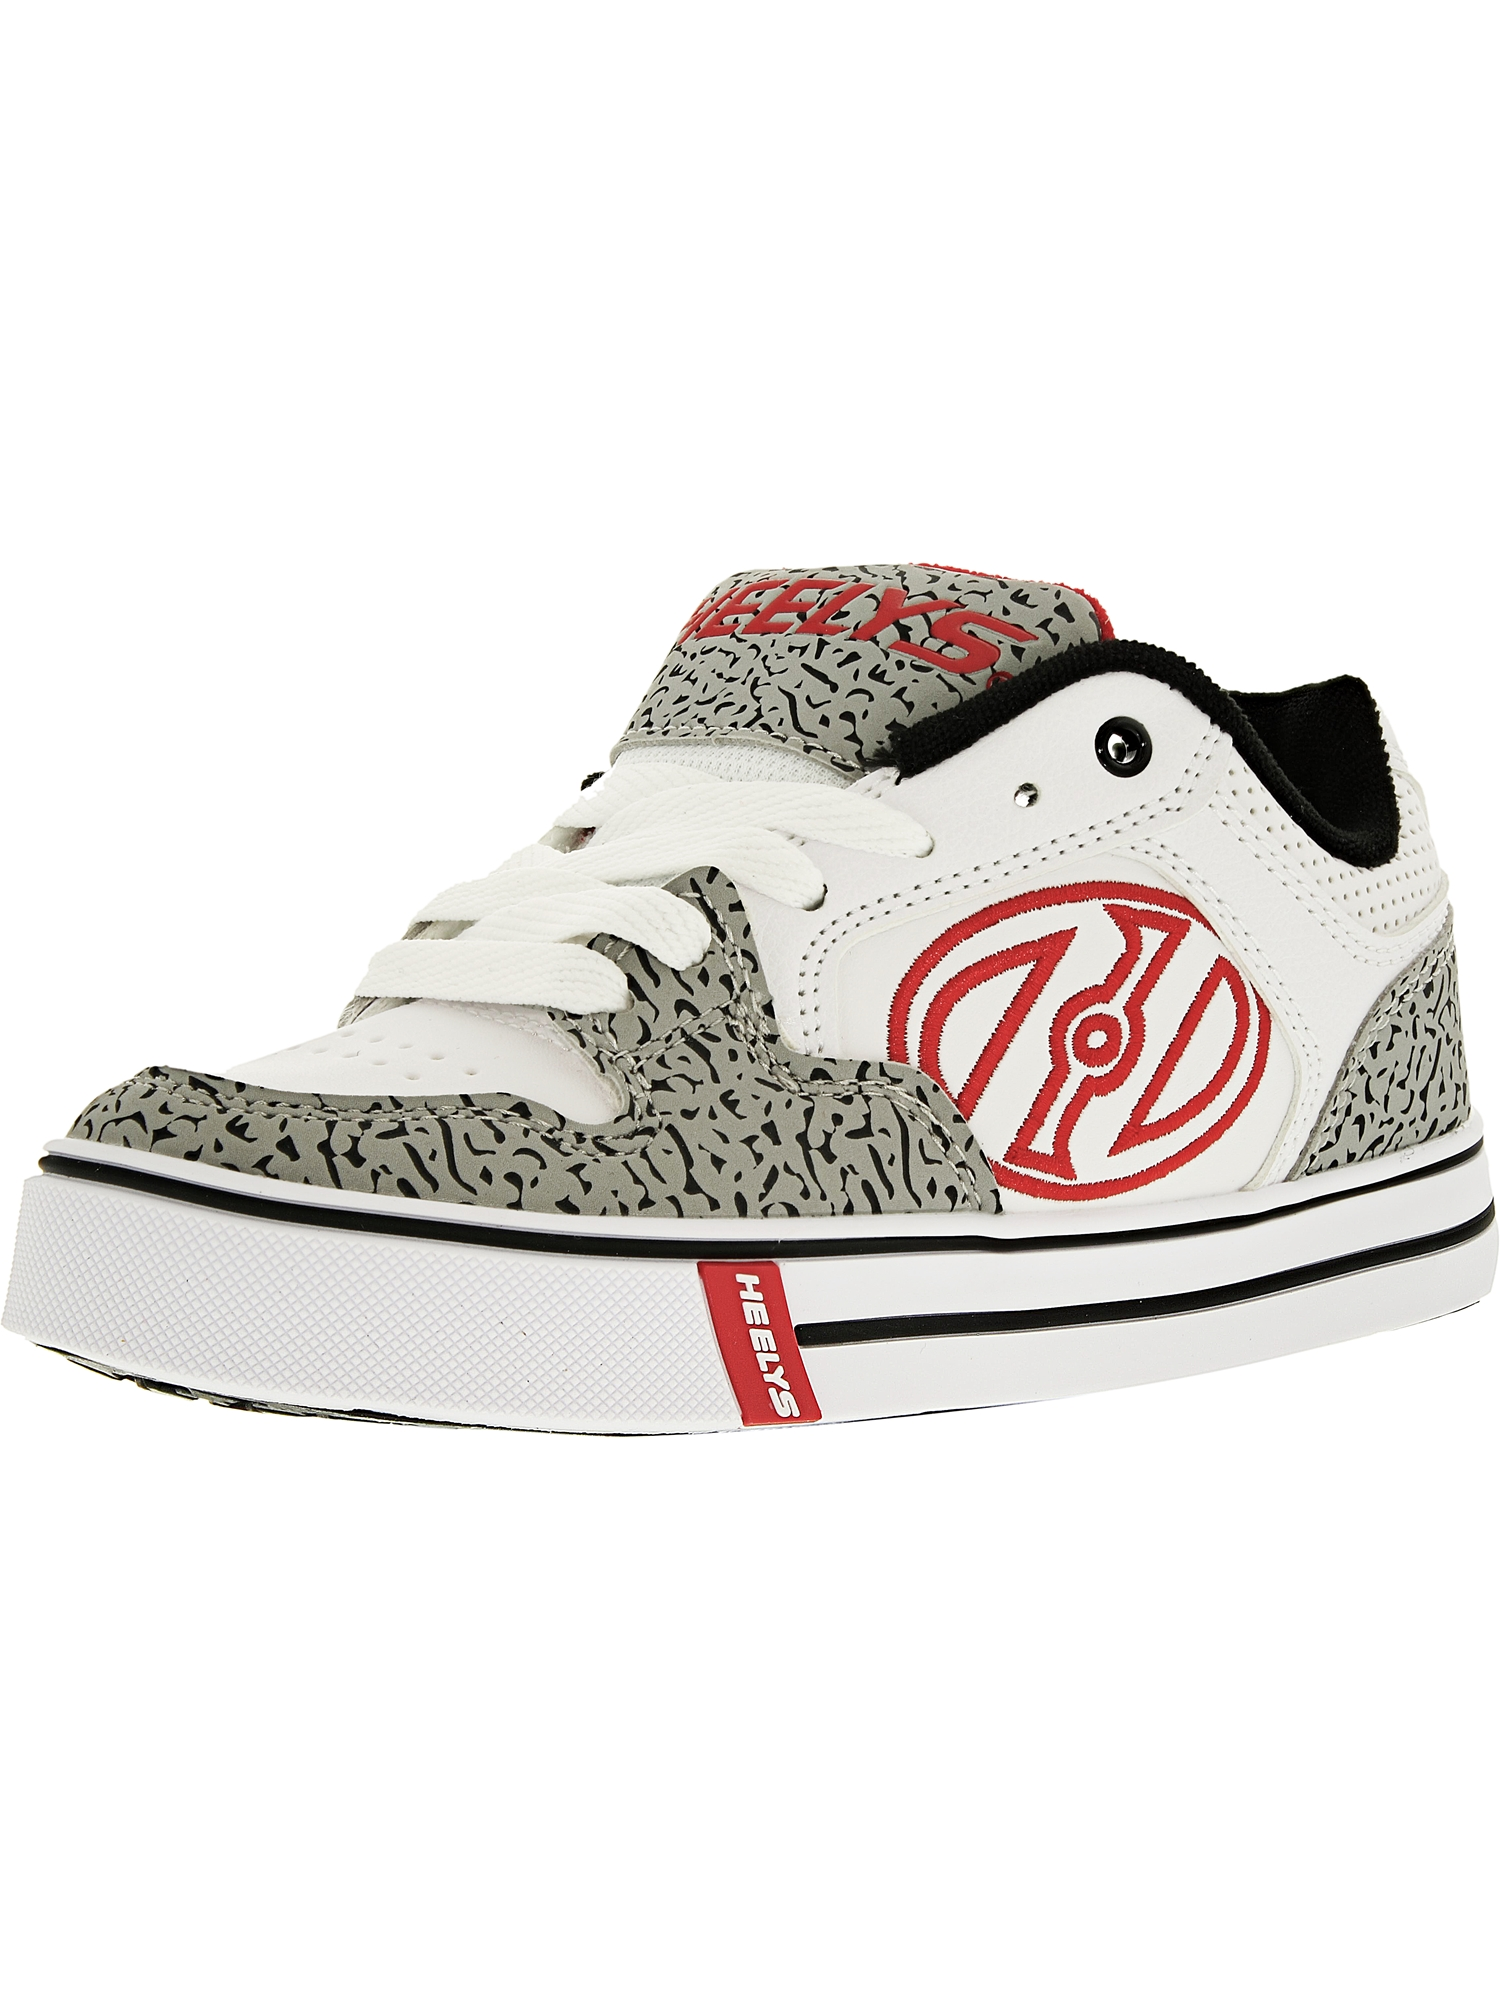 Heelys Motion Plus White/Grey/Elephant Print Ankle-High Skateboarding Shoe - 1M